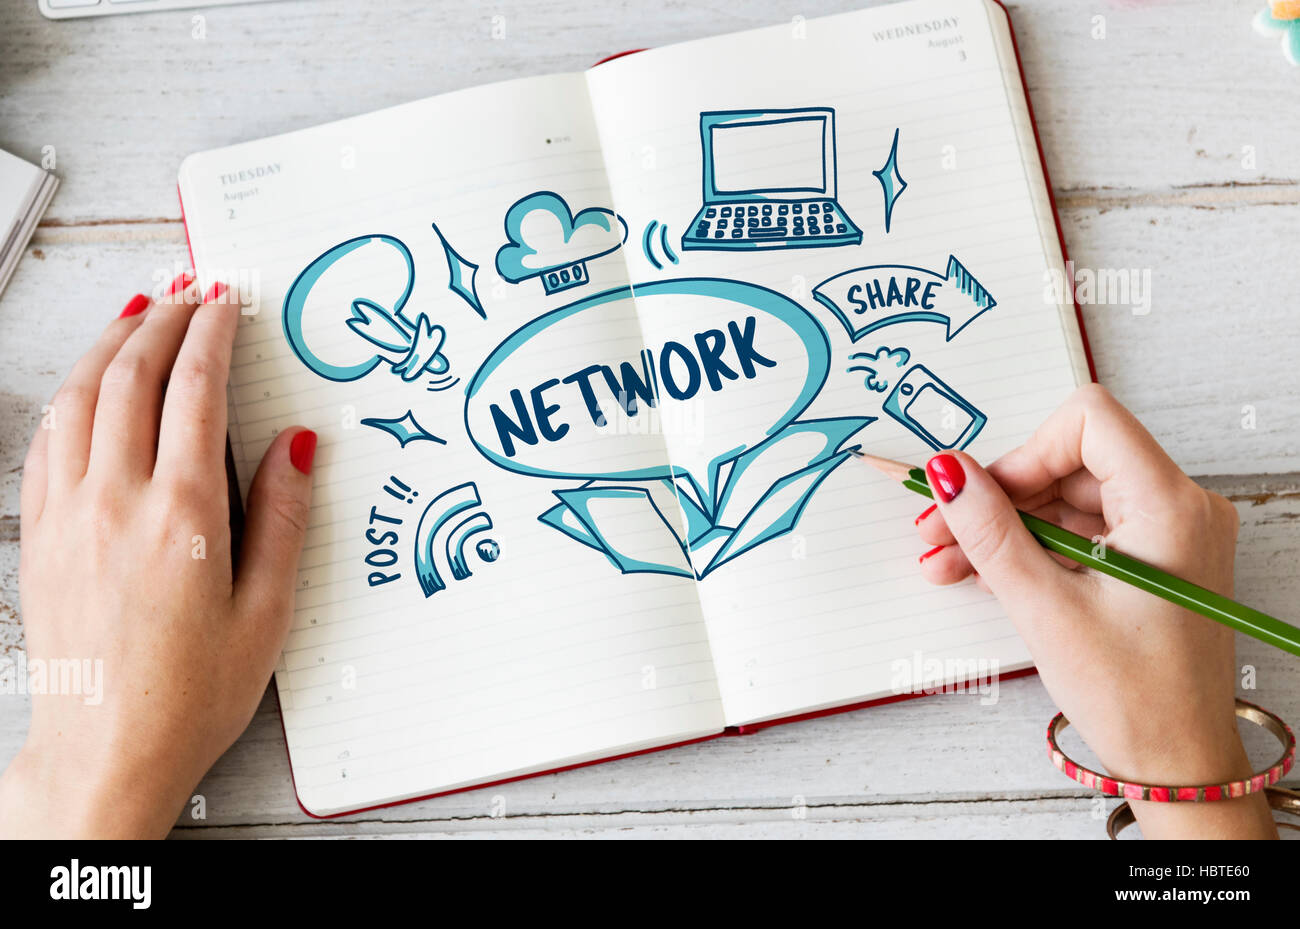 Network Connection Ideas Outside Box Sketch Concept Stock Photo ...